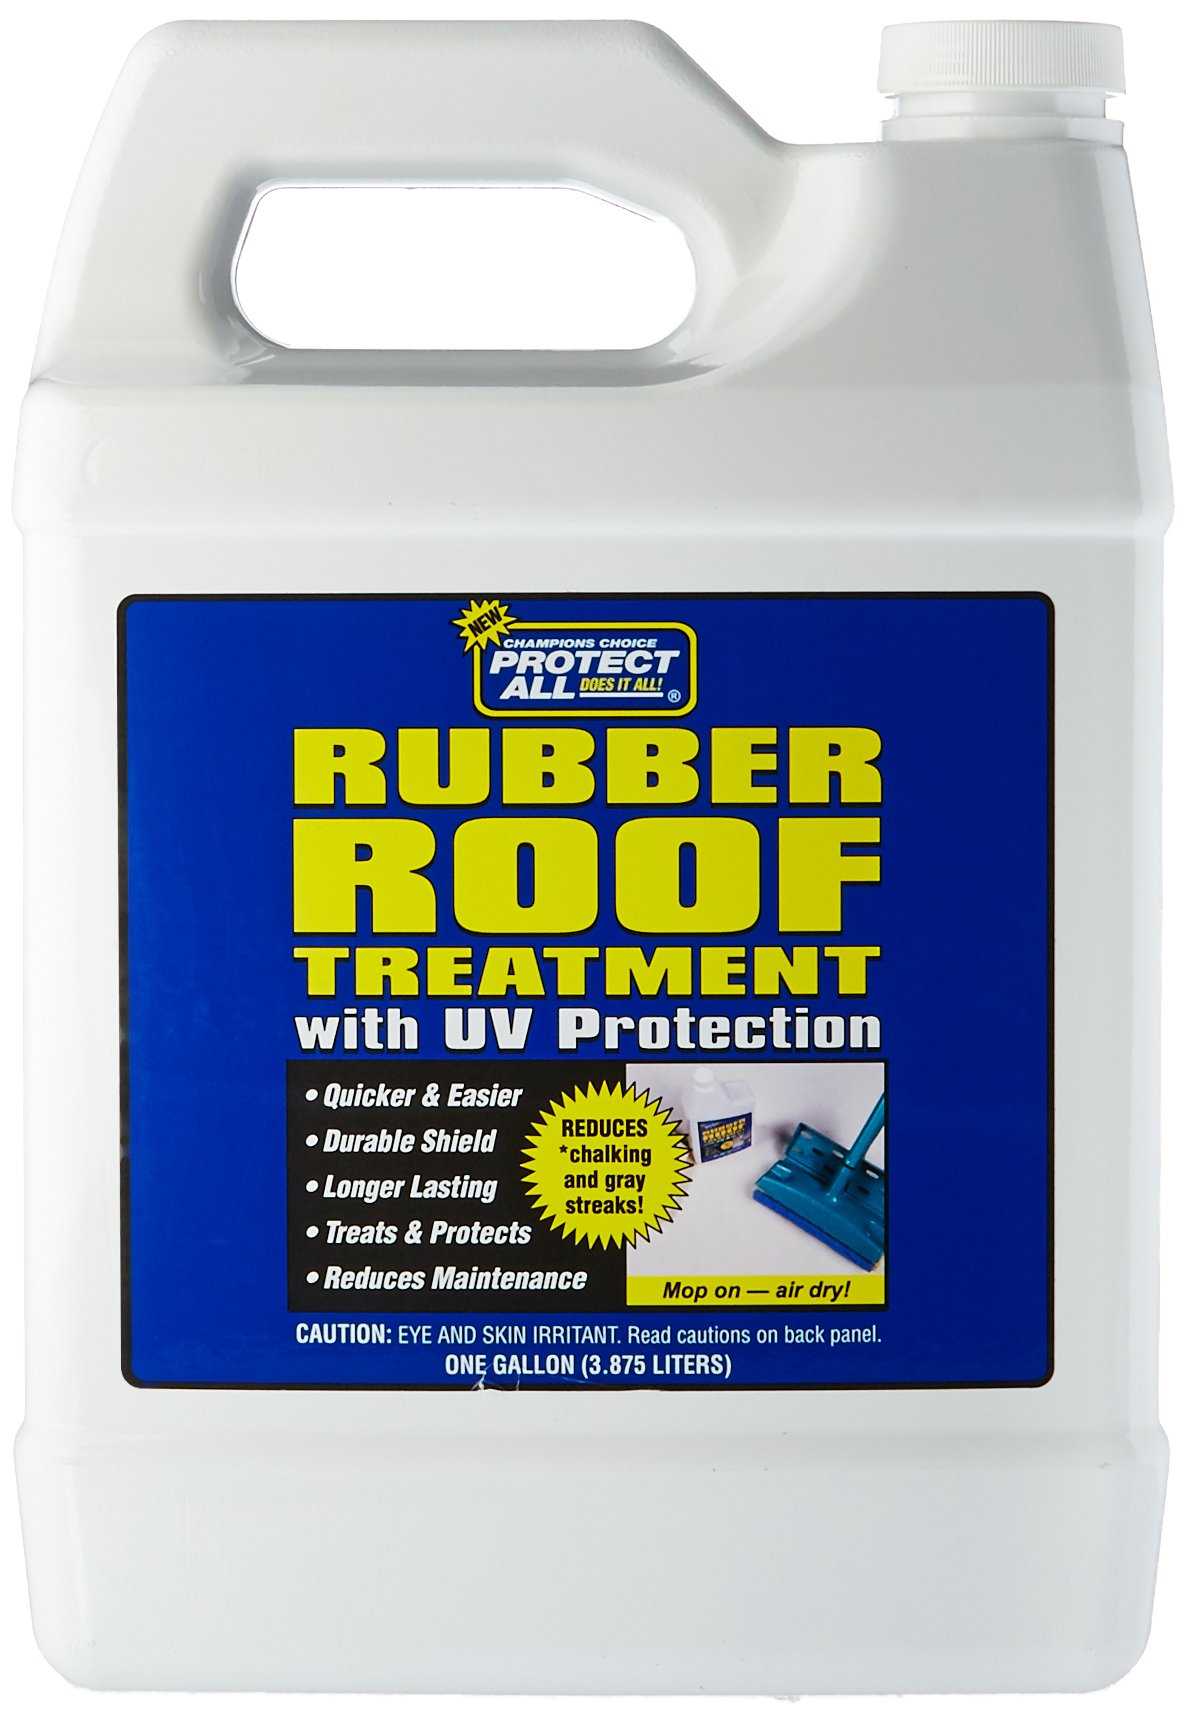 RV Rubber Roof Treatment - 1 gallon - anti-static, dirt repelling, and UV protectant -  Protect All 68128 by Thetford